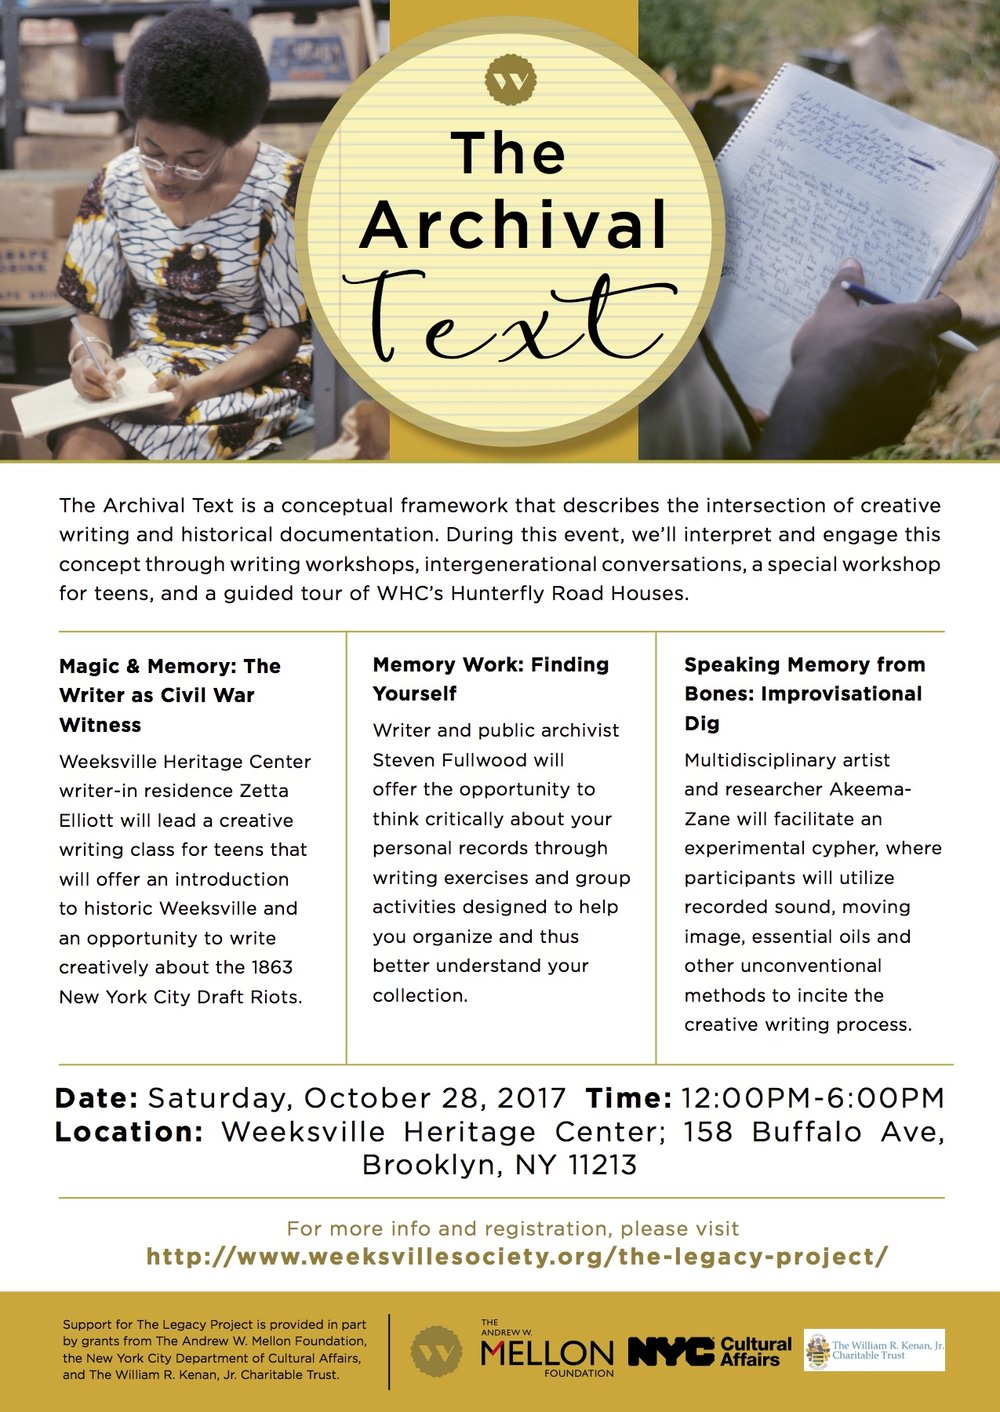 - The Archival Text is a conceptual framework that describes the intersection of creative writing and historical documentation. During this event, we'll interpret and engage this concept through writing workshops, intergenerational conversations, a special workshop for teens, and a guided tour of WHC's Hunterfly Road Houses.Space is limited, so registration is required for all workshops.Opening - 12:00PM-12:45PMFeatured writers will read excerpts of their work; and Joyce LeeAnn Joseph (archivist, interdisciplinary artist, and Public Programs Manager for TLP) will share grounding remarks and provide an orientation.Workshops - 1:00PM-2:30PMMagic & Memory: The Writer as Civil War Witness-Two-time Weeksville Heritage Center writer-in-residence Zetta Elliott will offer a creative writing class for teens. Designed for beginners, this 90-minute workshop will offer an introduction to historic Weeksville and an opportunity to write creatively about the 1863 New York City Draft Riots. Participants will read teenaged Maritcha Lyons' first-hand account of the riots and consider whether fantasy fiction helps African Americans to remember, reconstruct, and/or recover from the past.Memory Work: Finding Yourself-Don't know what to do with those boxes of family papers, journals, work records, etc.? Writer and public archivist Steven Fullwood will help you. His workshop will offer you the opportunity to think critically about your personal records through writing exercises and group activities designed to help you organize and thus better understand your collection.Speaking Memory from Bones: Improvisational Dig-Multidisciplinary artist and researcher Akeema-Zane will facilitate an experimental cypher where artists can meet to compose. The workshop is concerned with the lyrical form, and participants will see archival excavation as one of infinite ways to evoke a creative writing practice. Centering the sensory and sensational, participants will utilize recorded sound, manuscripts, l